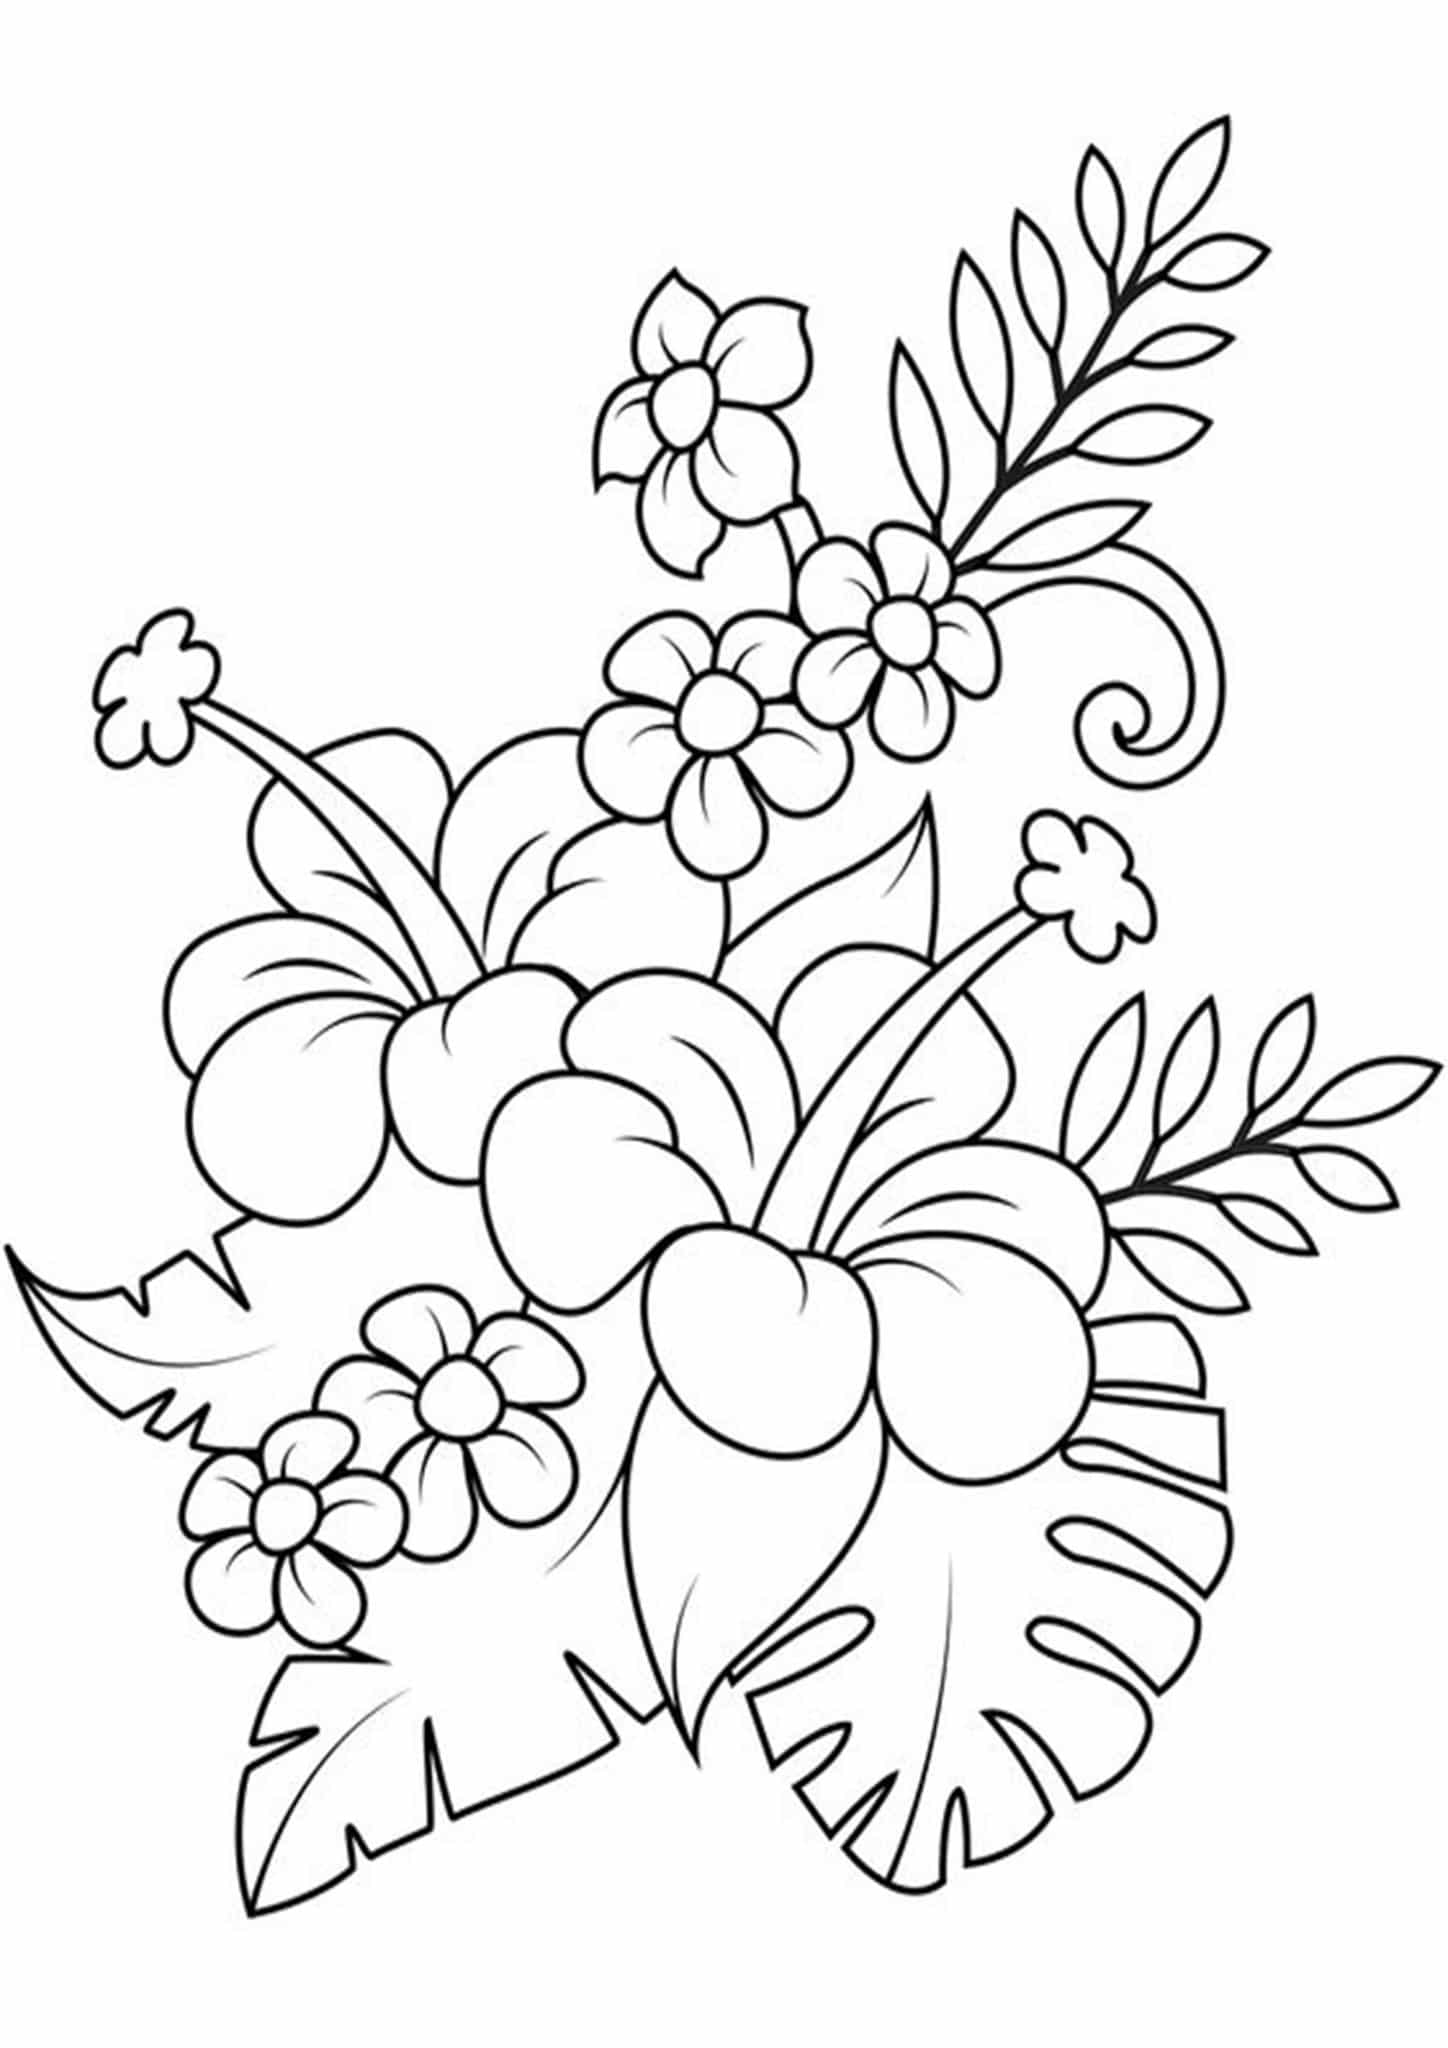 childrens coloring pages flowers flowers to color for kids flowers kids coloring pages coloring pages childrens flowers